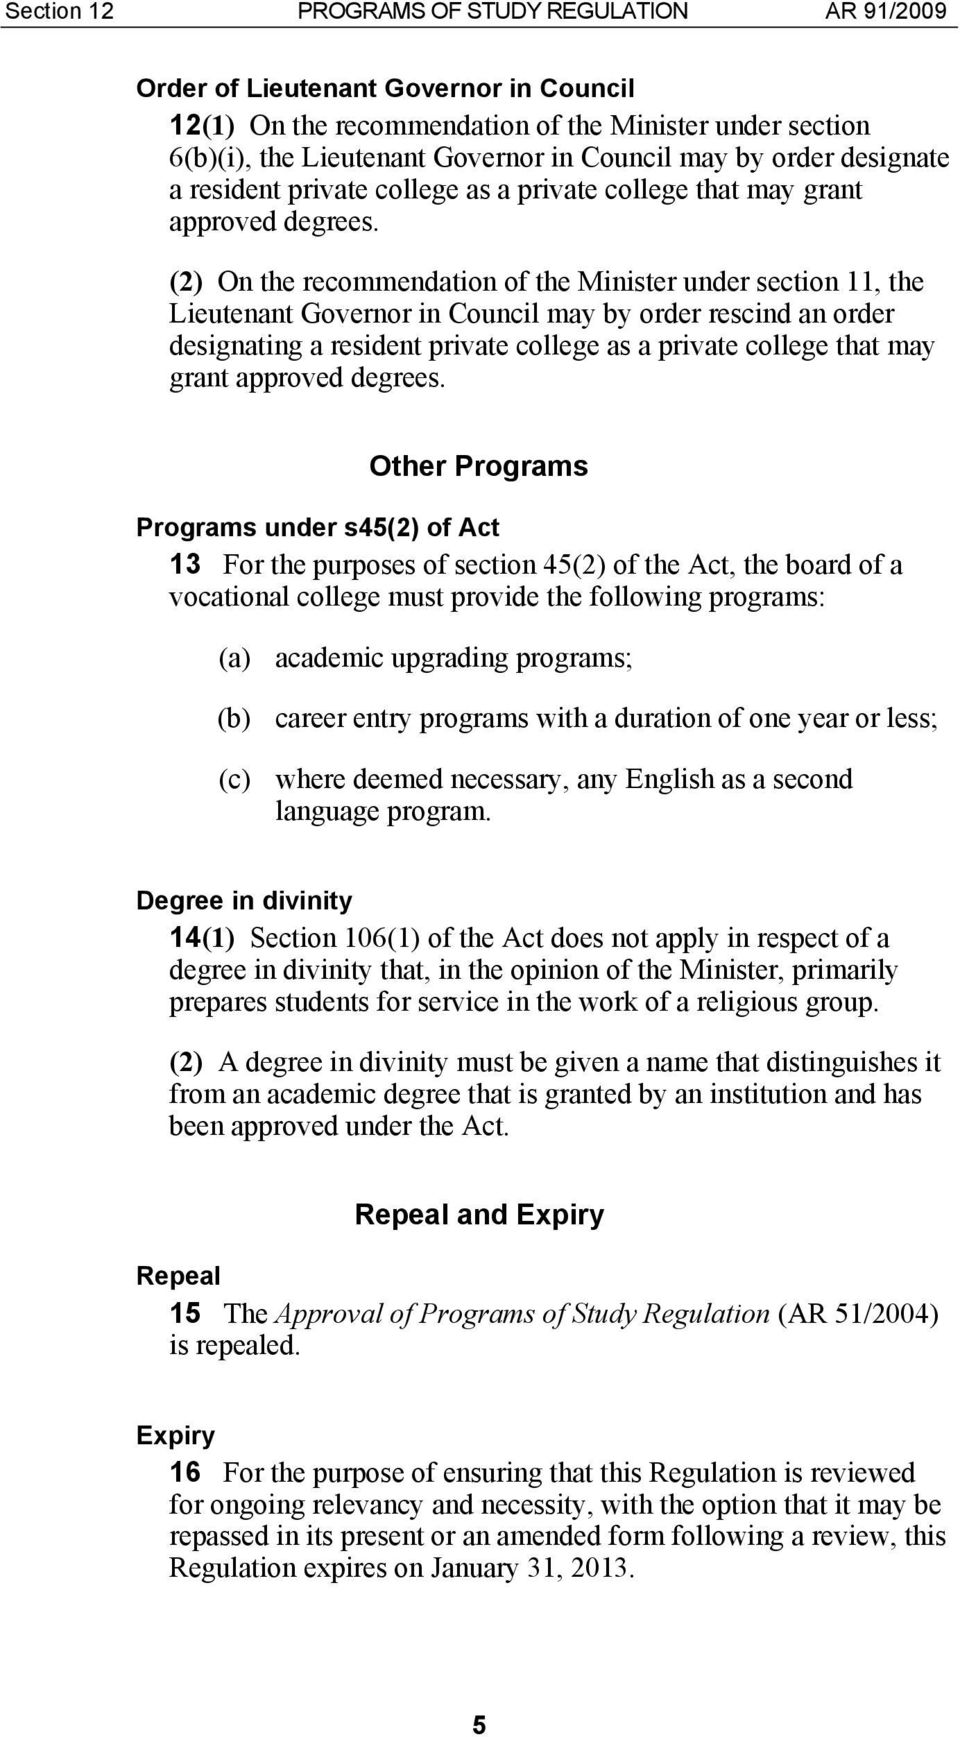 (2) On the recommendation of the Minister under section 11, the Lieutenant Governor in Council may by order rescind an order designating a resident private college as a private college that may grant